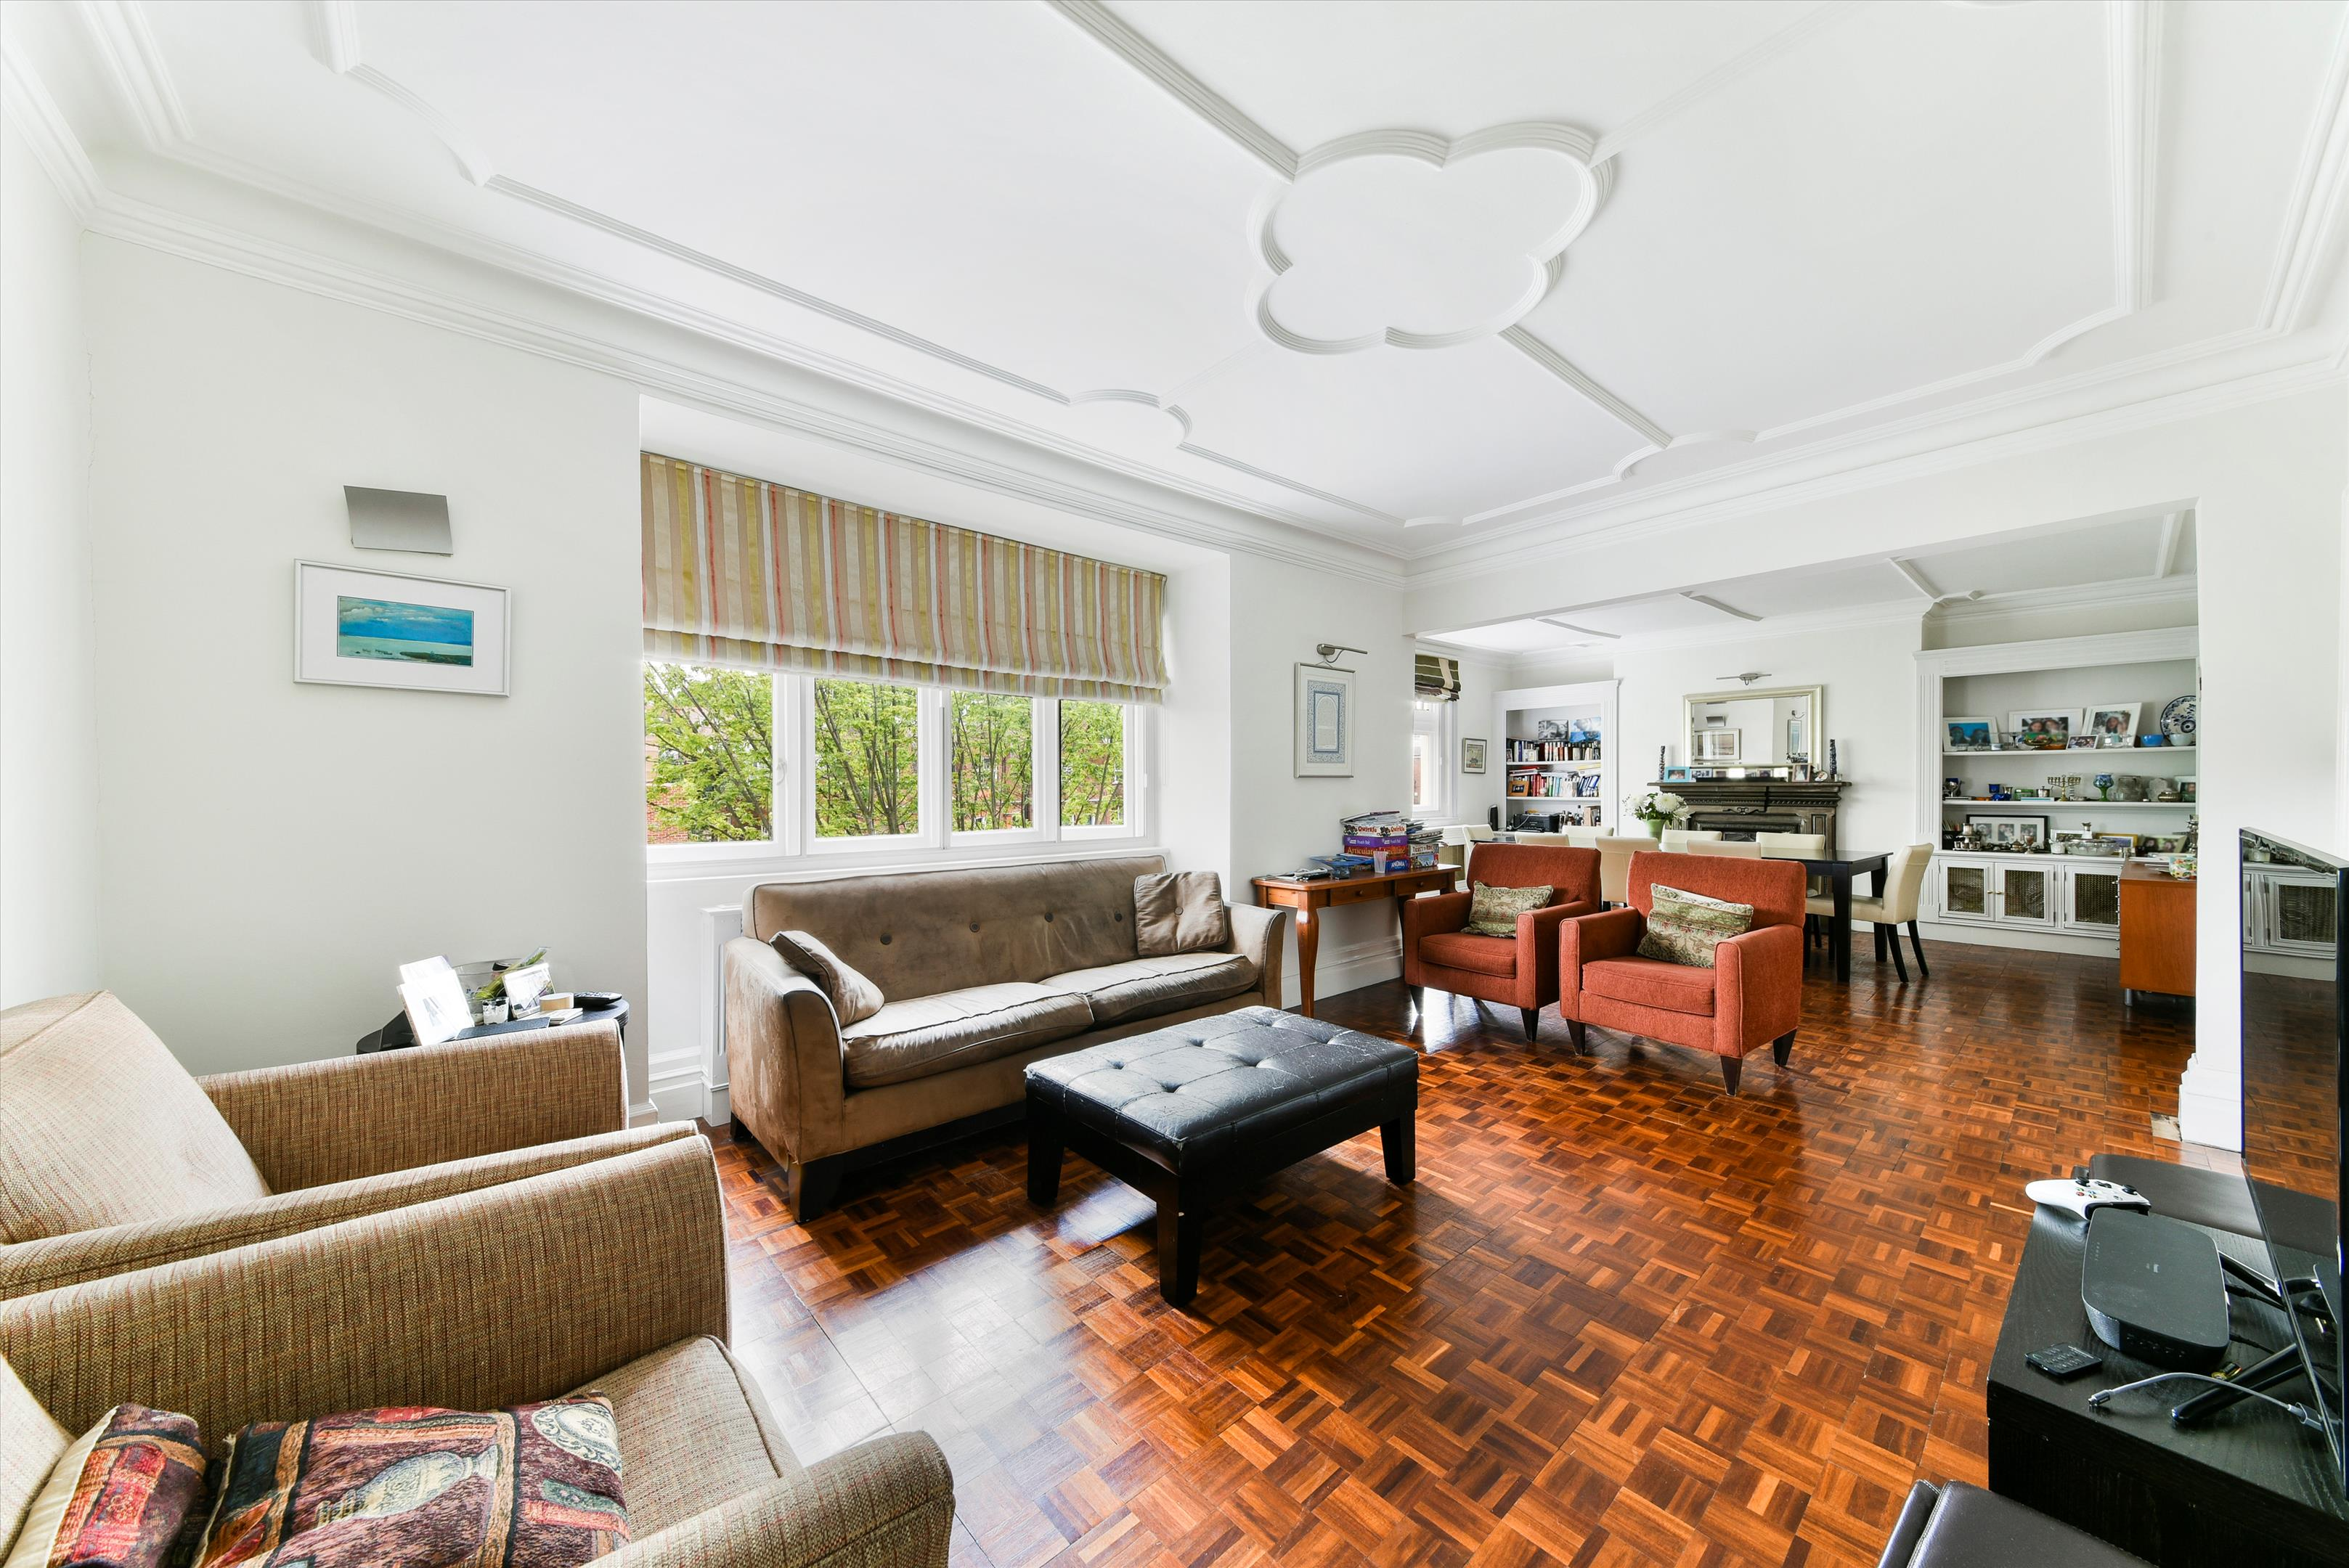 Avenue Mansions, Finchley Rd, London NW3 7AX, UK - Source: Knight Frank